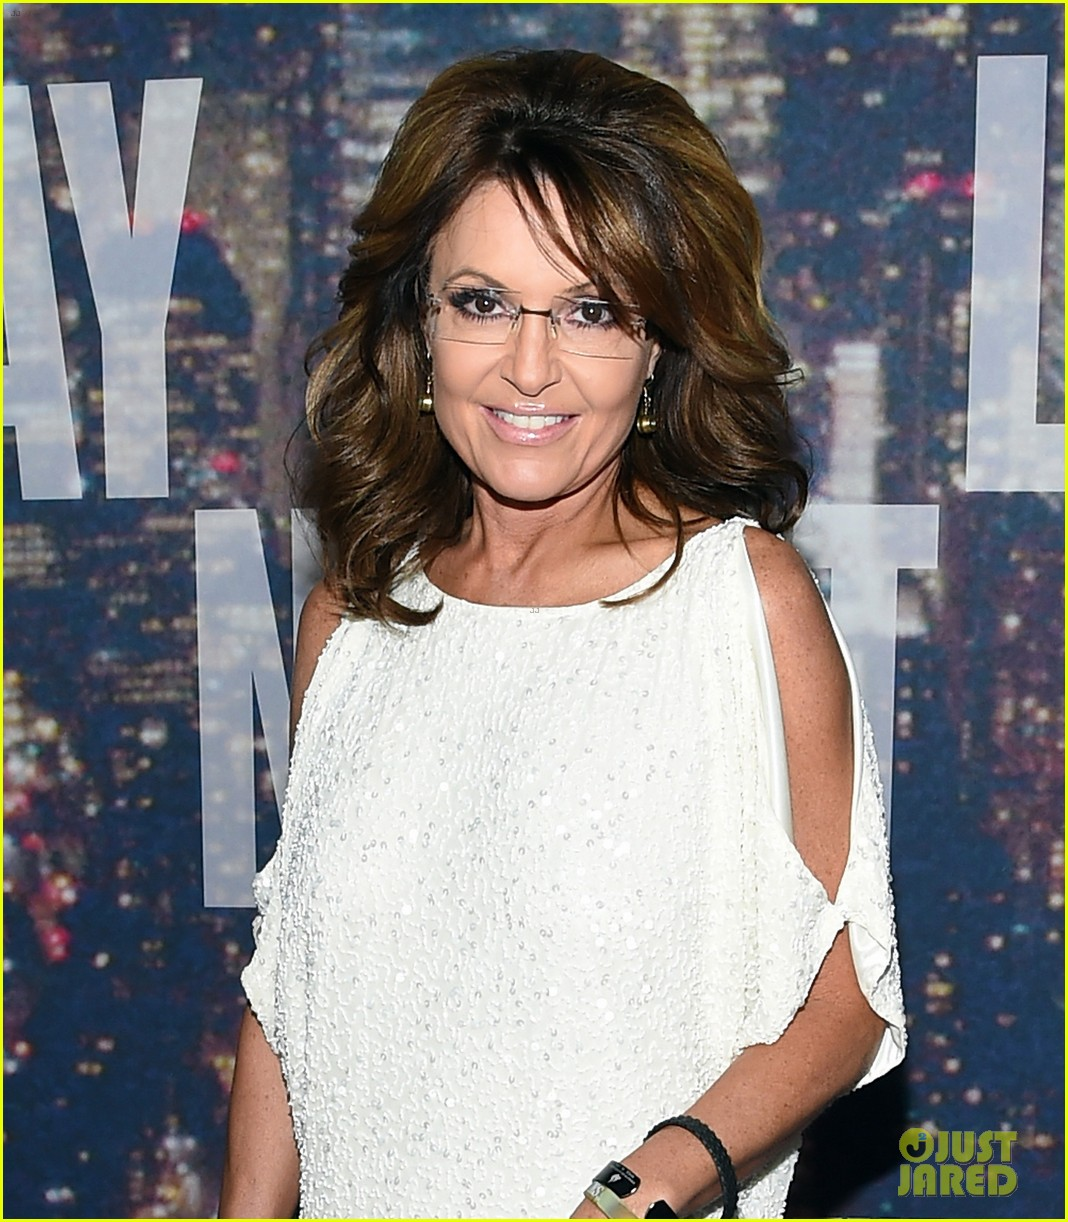 sarah palin shows some skin in short dress at snl 40 013305295